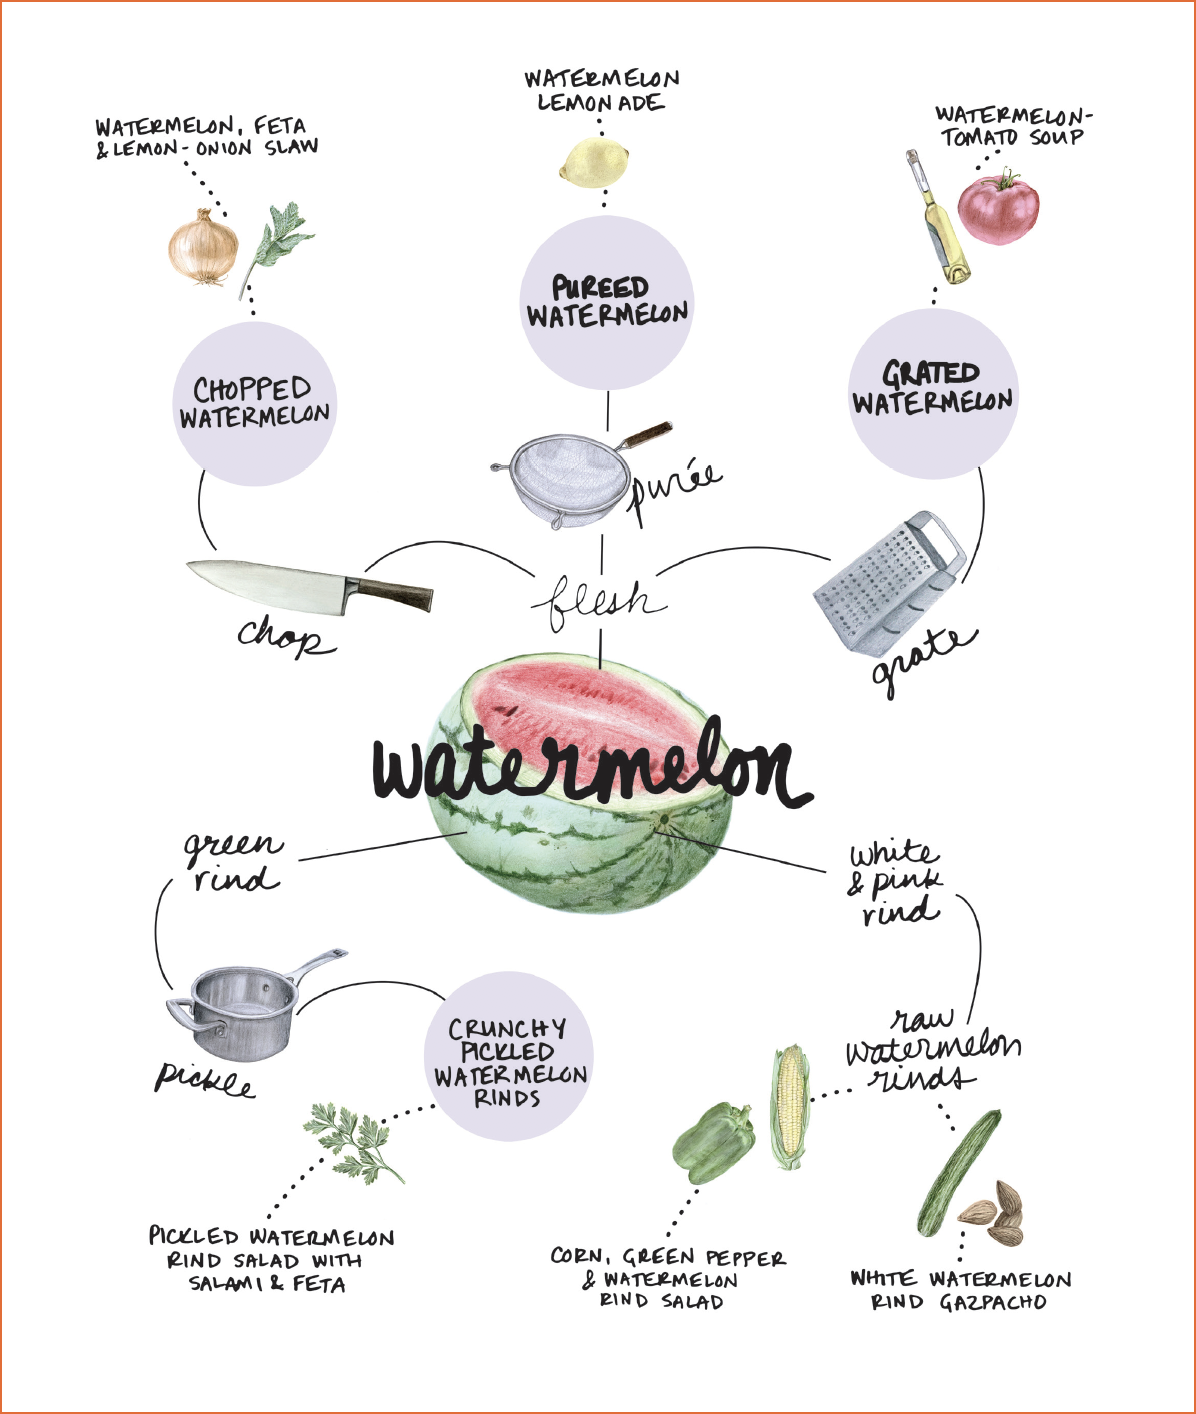 What We Value - EfficiencyWe scale down the systems of professional production to the home, distilling important general strategies of organization and suggestions for stocking a top-quality, versatile pantry.ResourcefulnessAn excellently-prepared, flexible pantry gives any level of cook the ability to improvise. All Purple Kale instruction starts here.SustainabilityOur ingredient-driven approach requires we use the best products possible. Mostly, these are seasonal and local.EconomyWe focus on using perishable items first, and on using all parts of any single ingredient, even sometimes those typically discarded.Good TasteCulinary instruction fails when attempts to save time, money, and effort make for anything less than fantastic food.